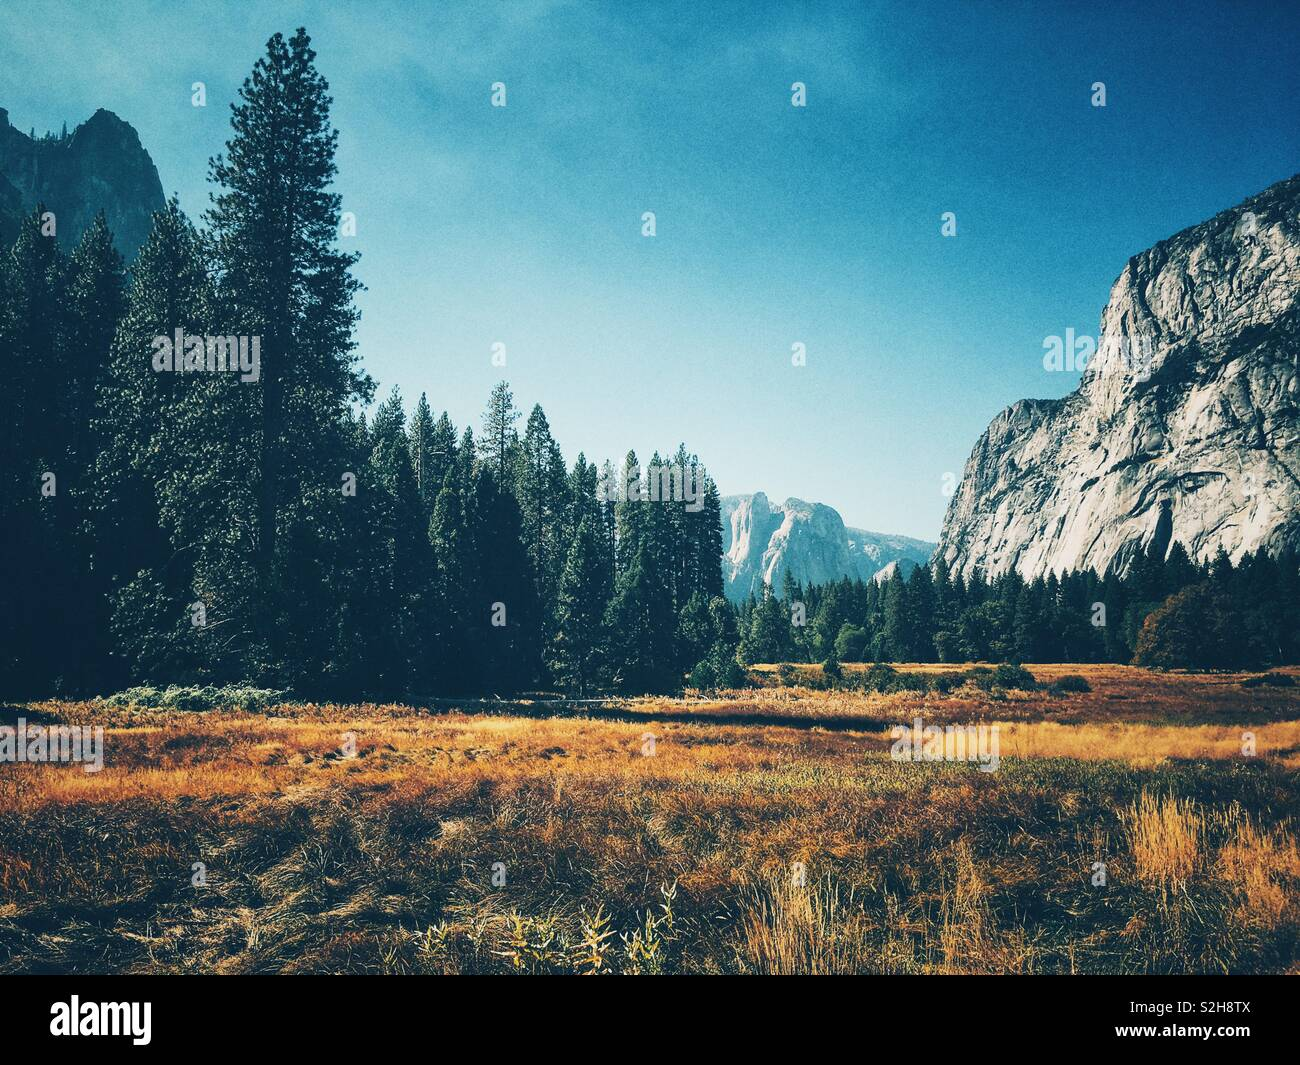 View across Yosemite Valley floor - Stock Image